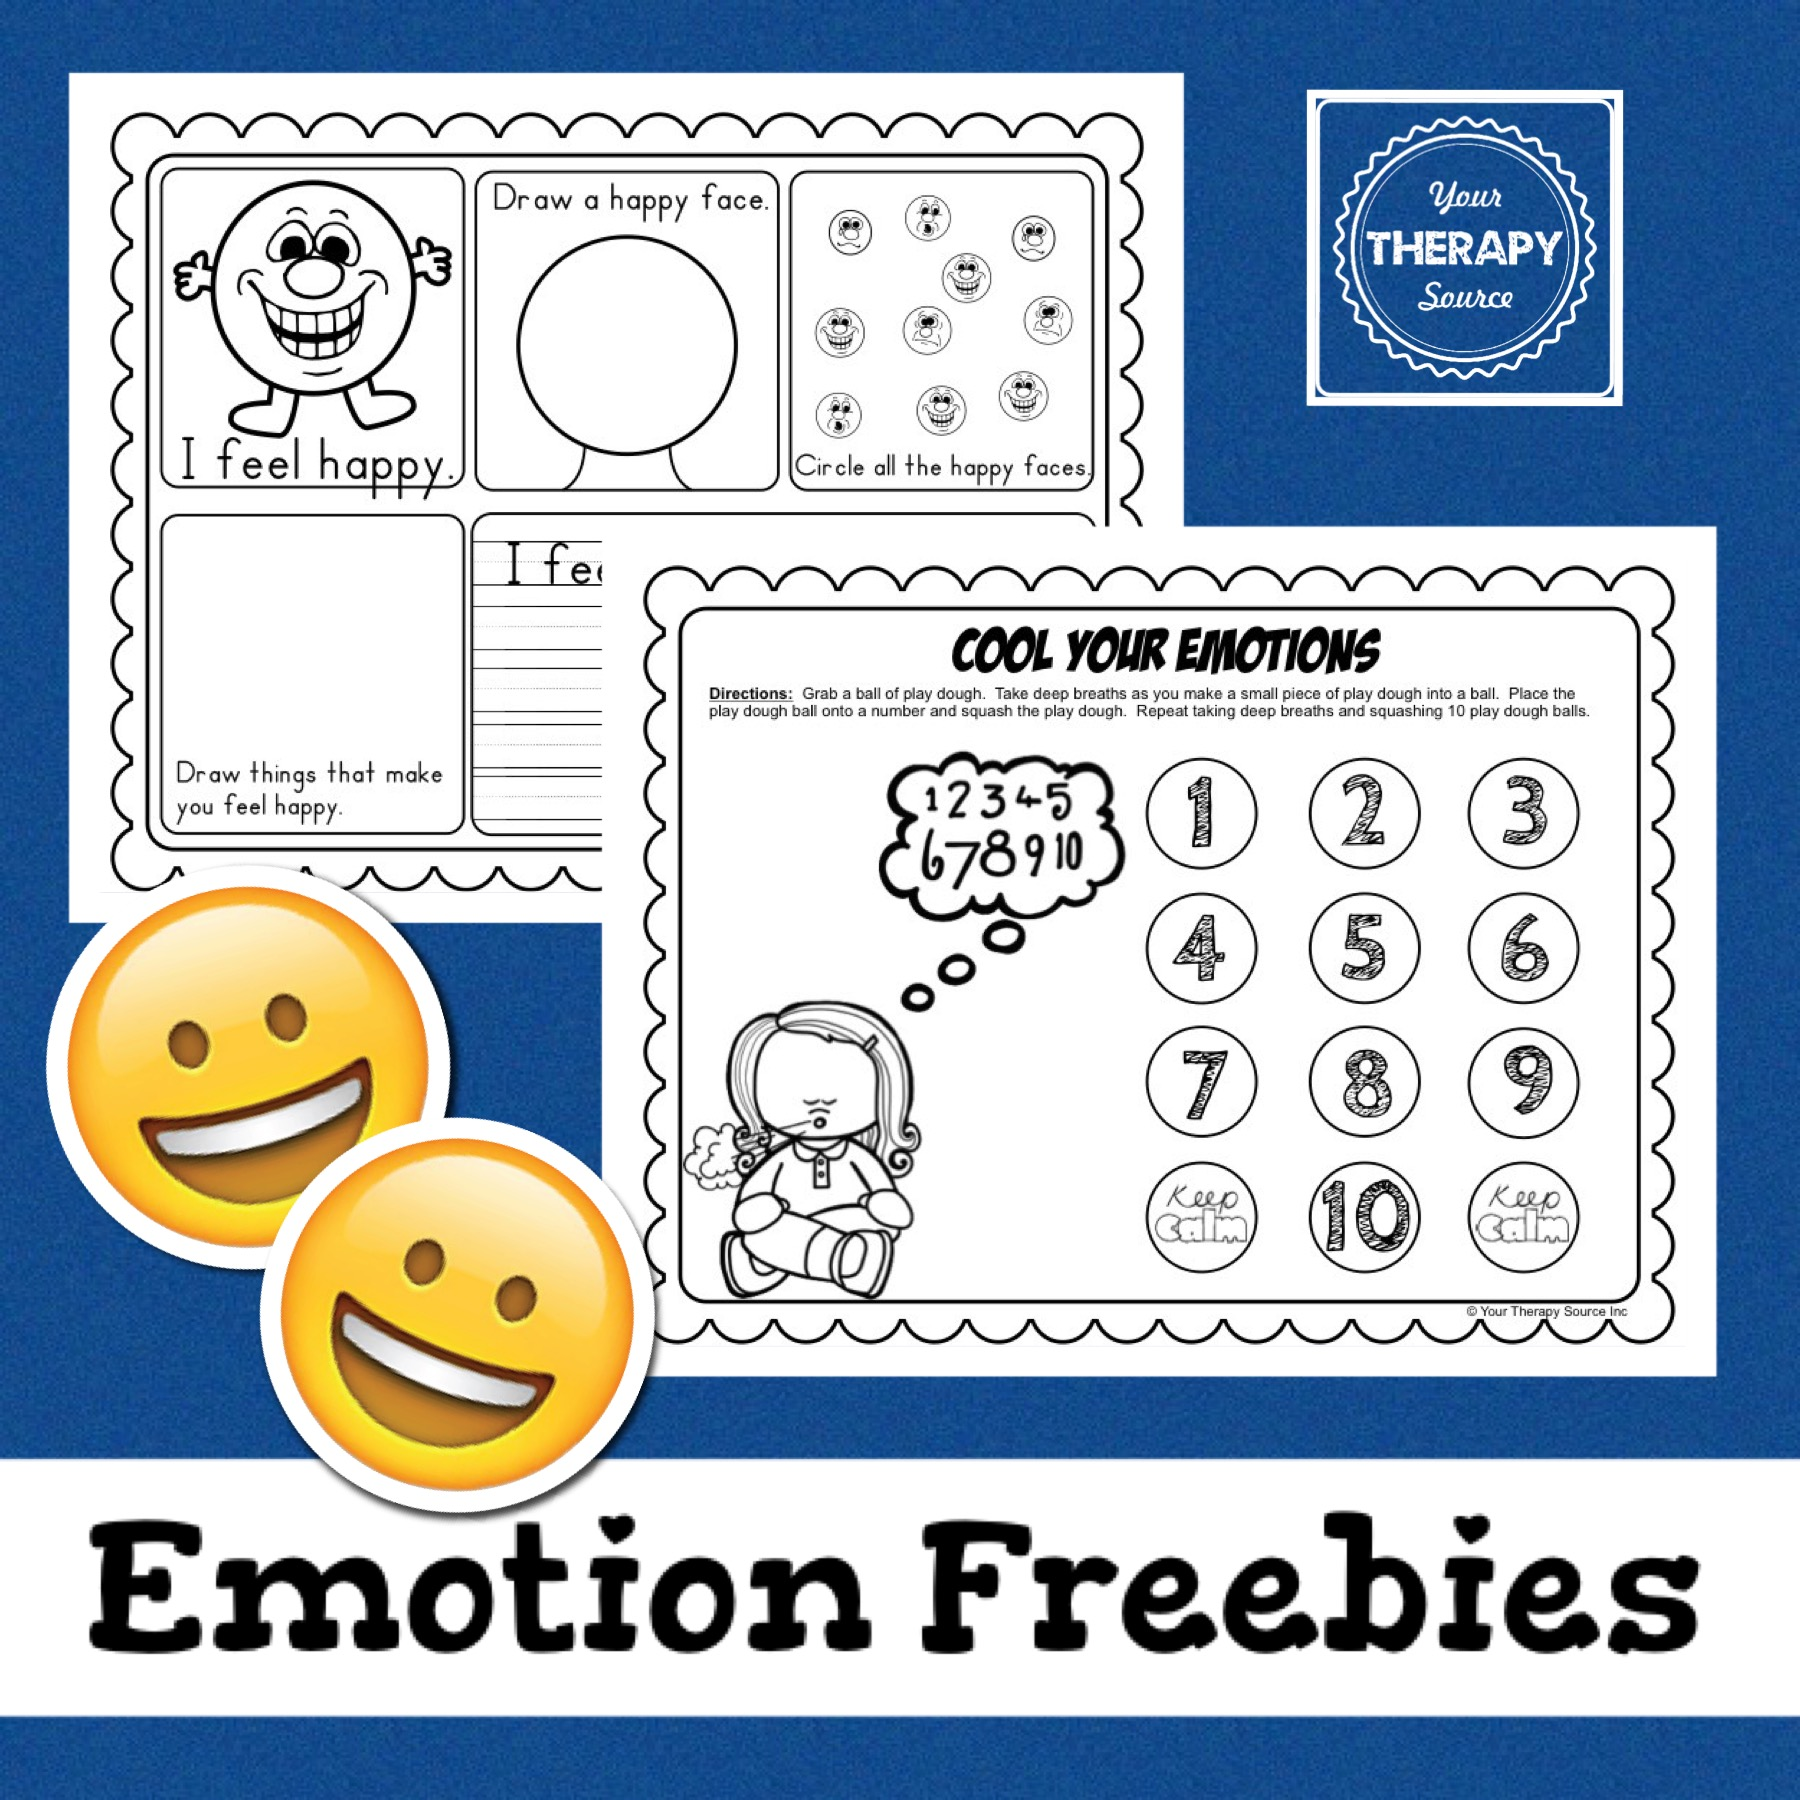 Emotions Freebie from https://yourtherapysource.com/emotionsfreebie